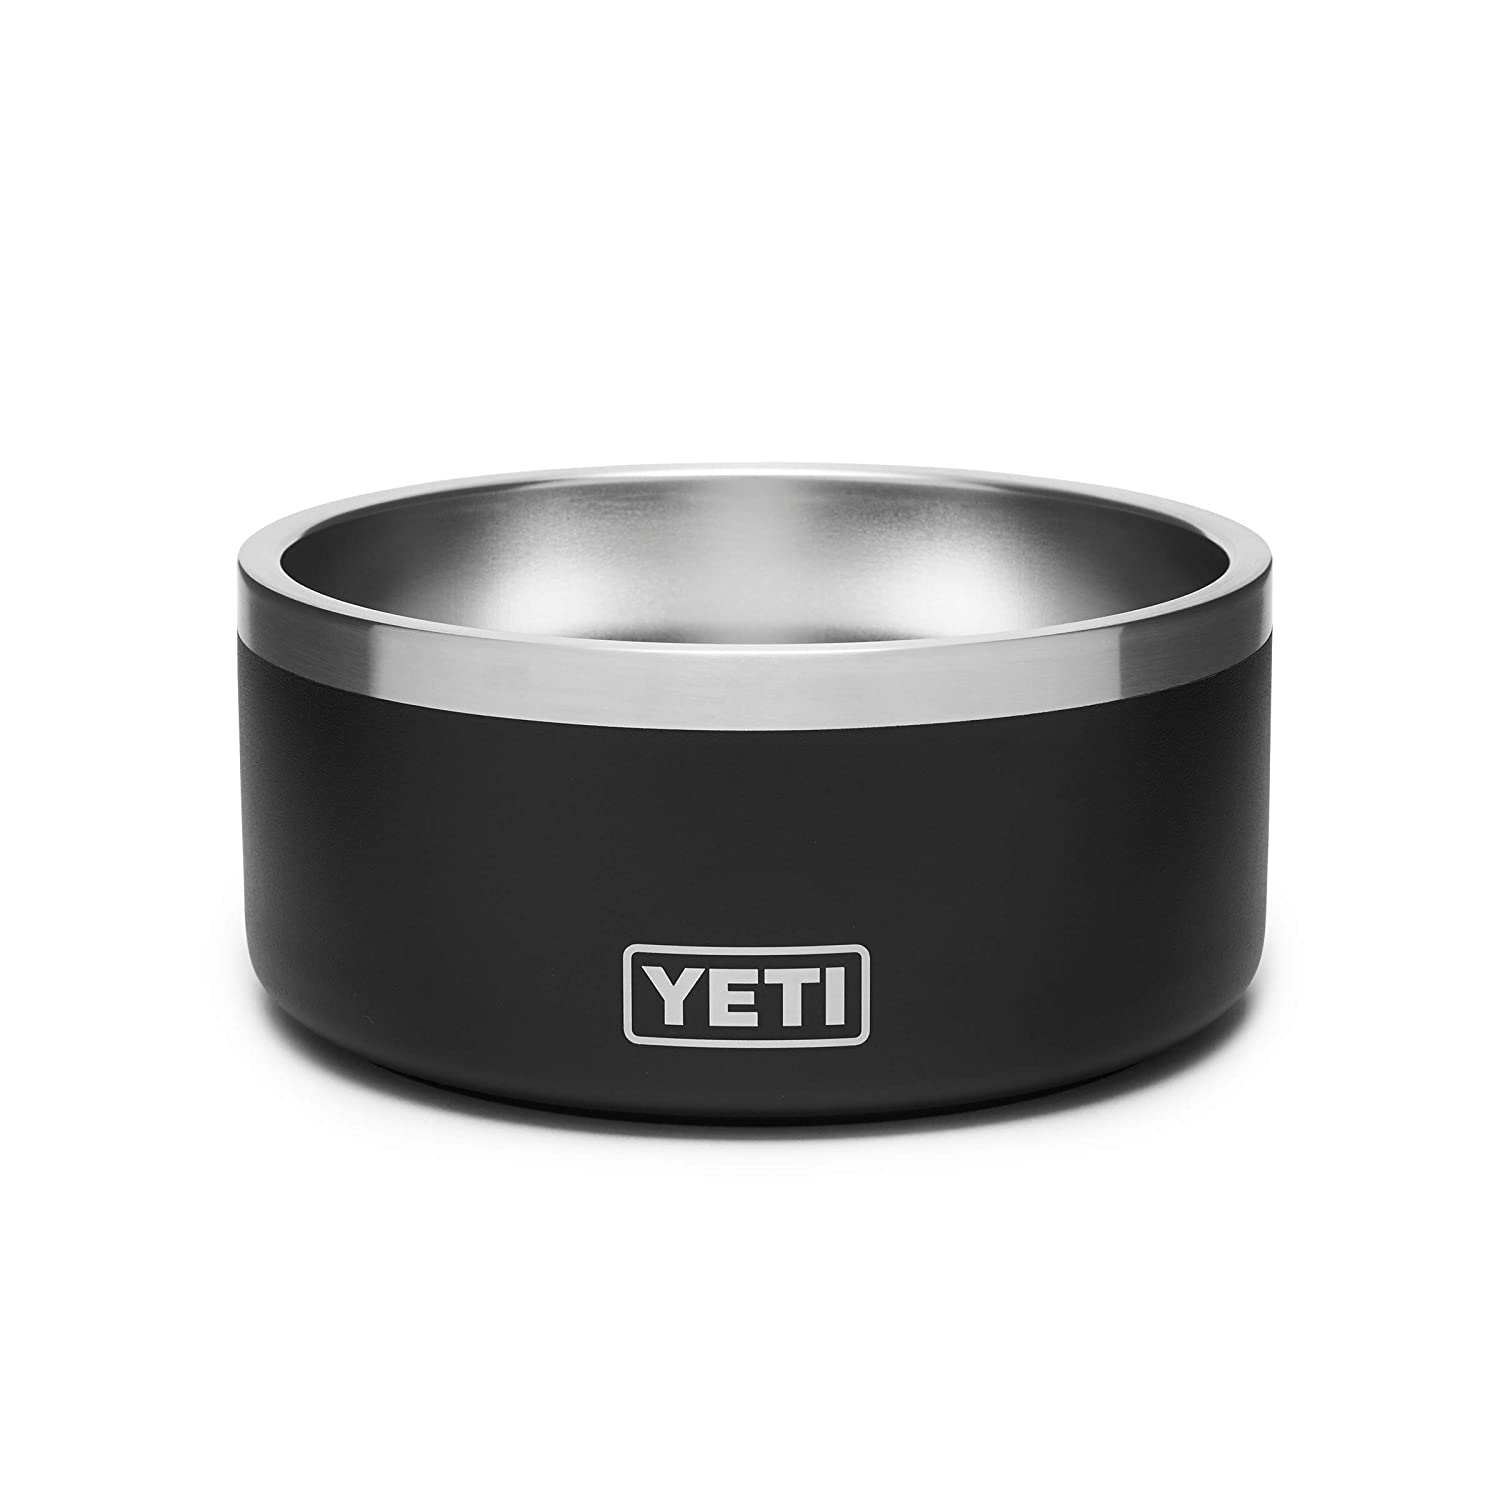 YETI Boomer 4 Stainless Steel, Non-Slip Dog Bowl